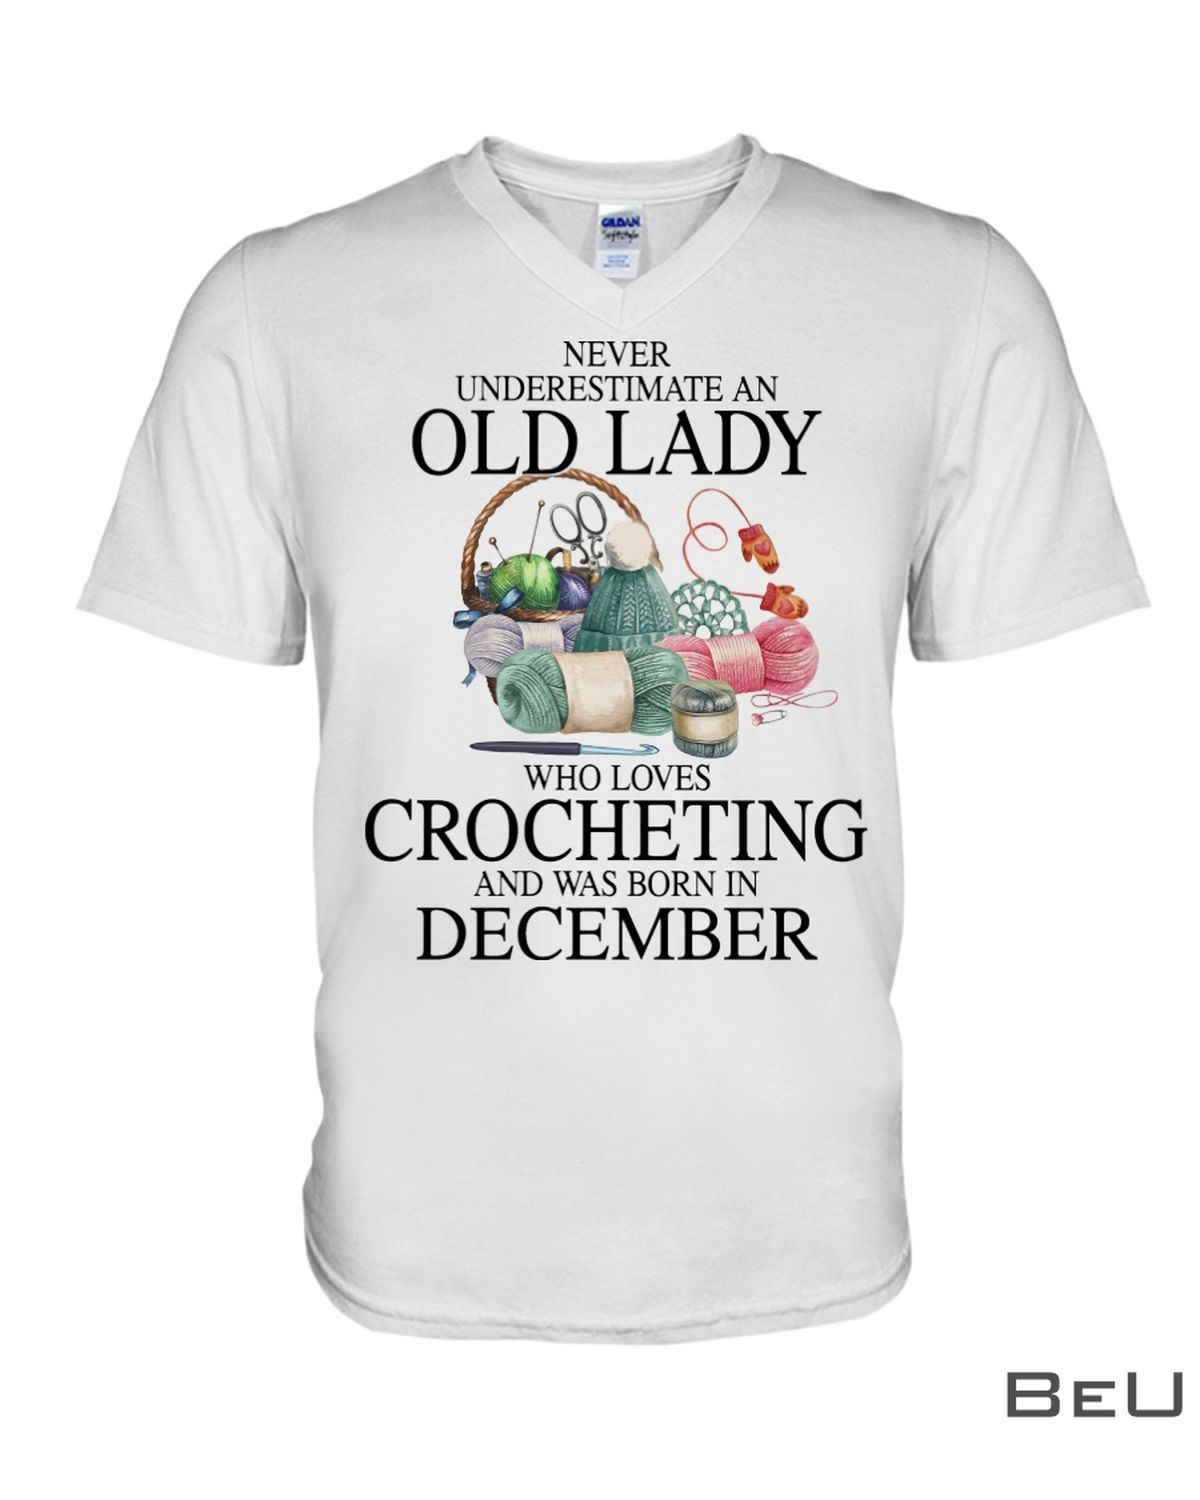 Never underestimate an old lady who loves Crocheting and was born in December shirtx